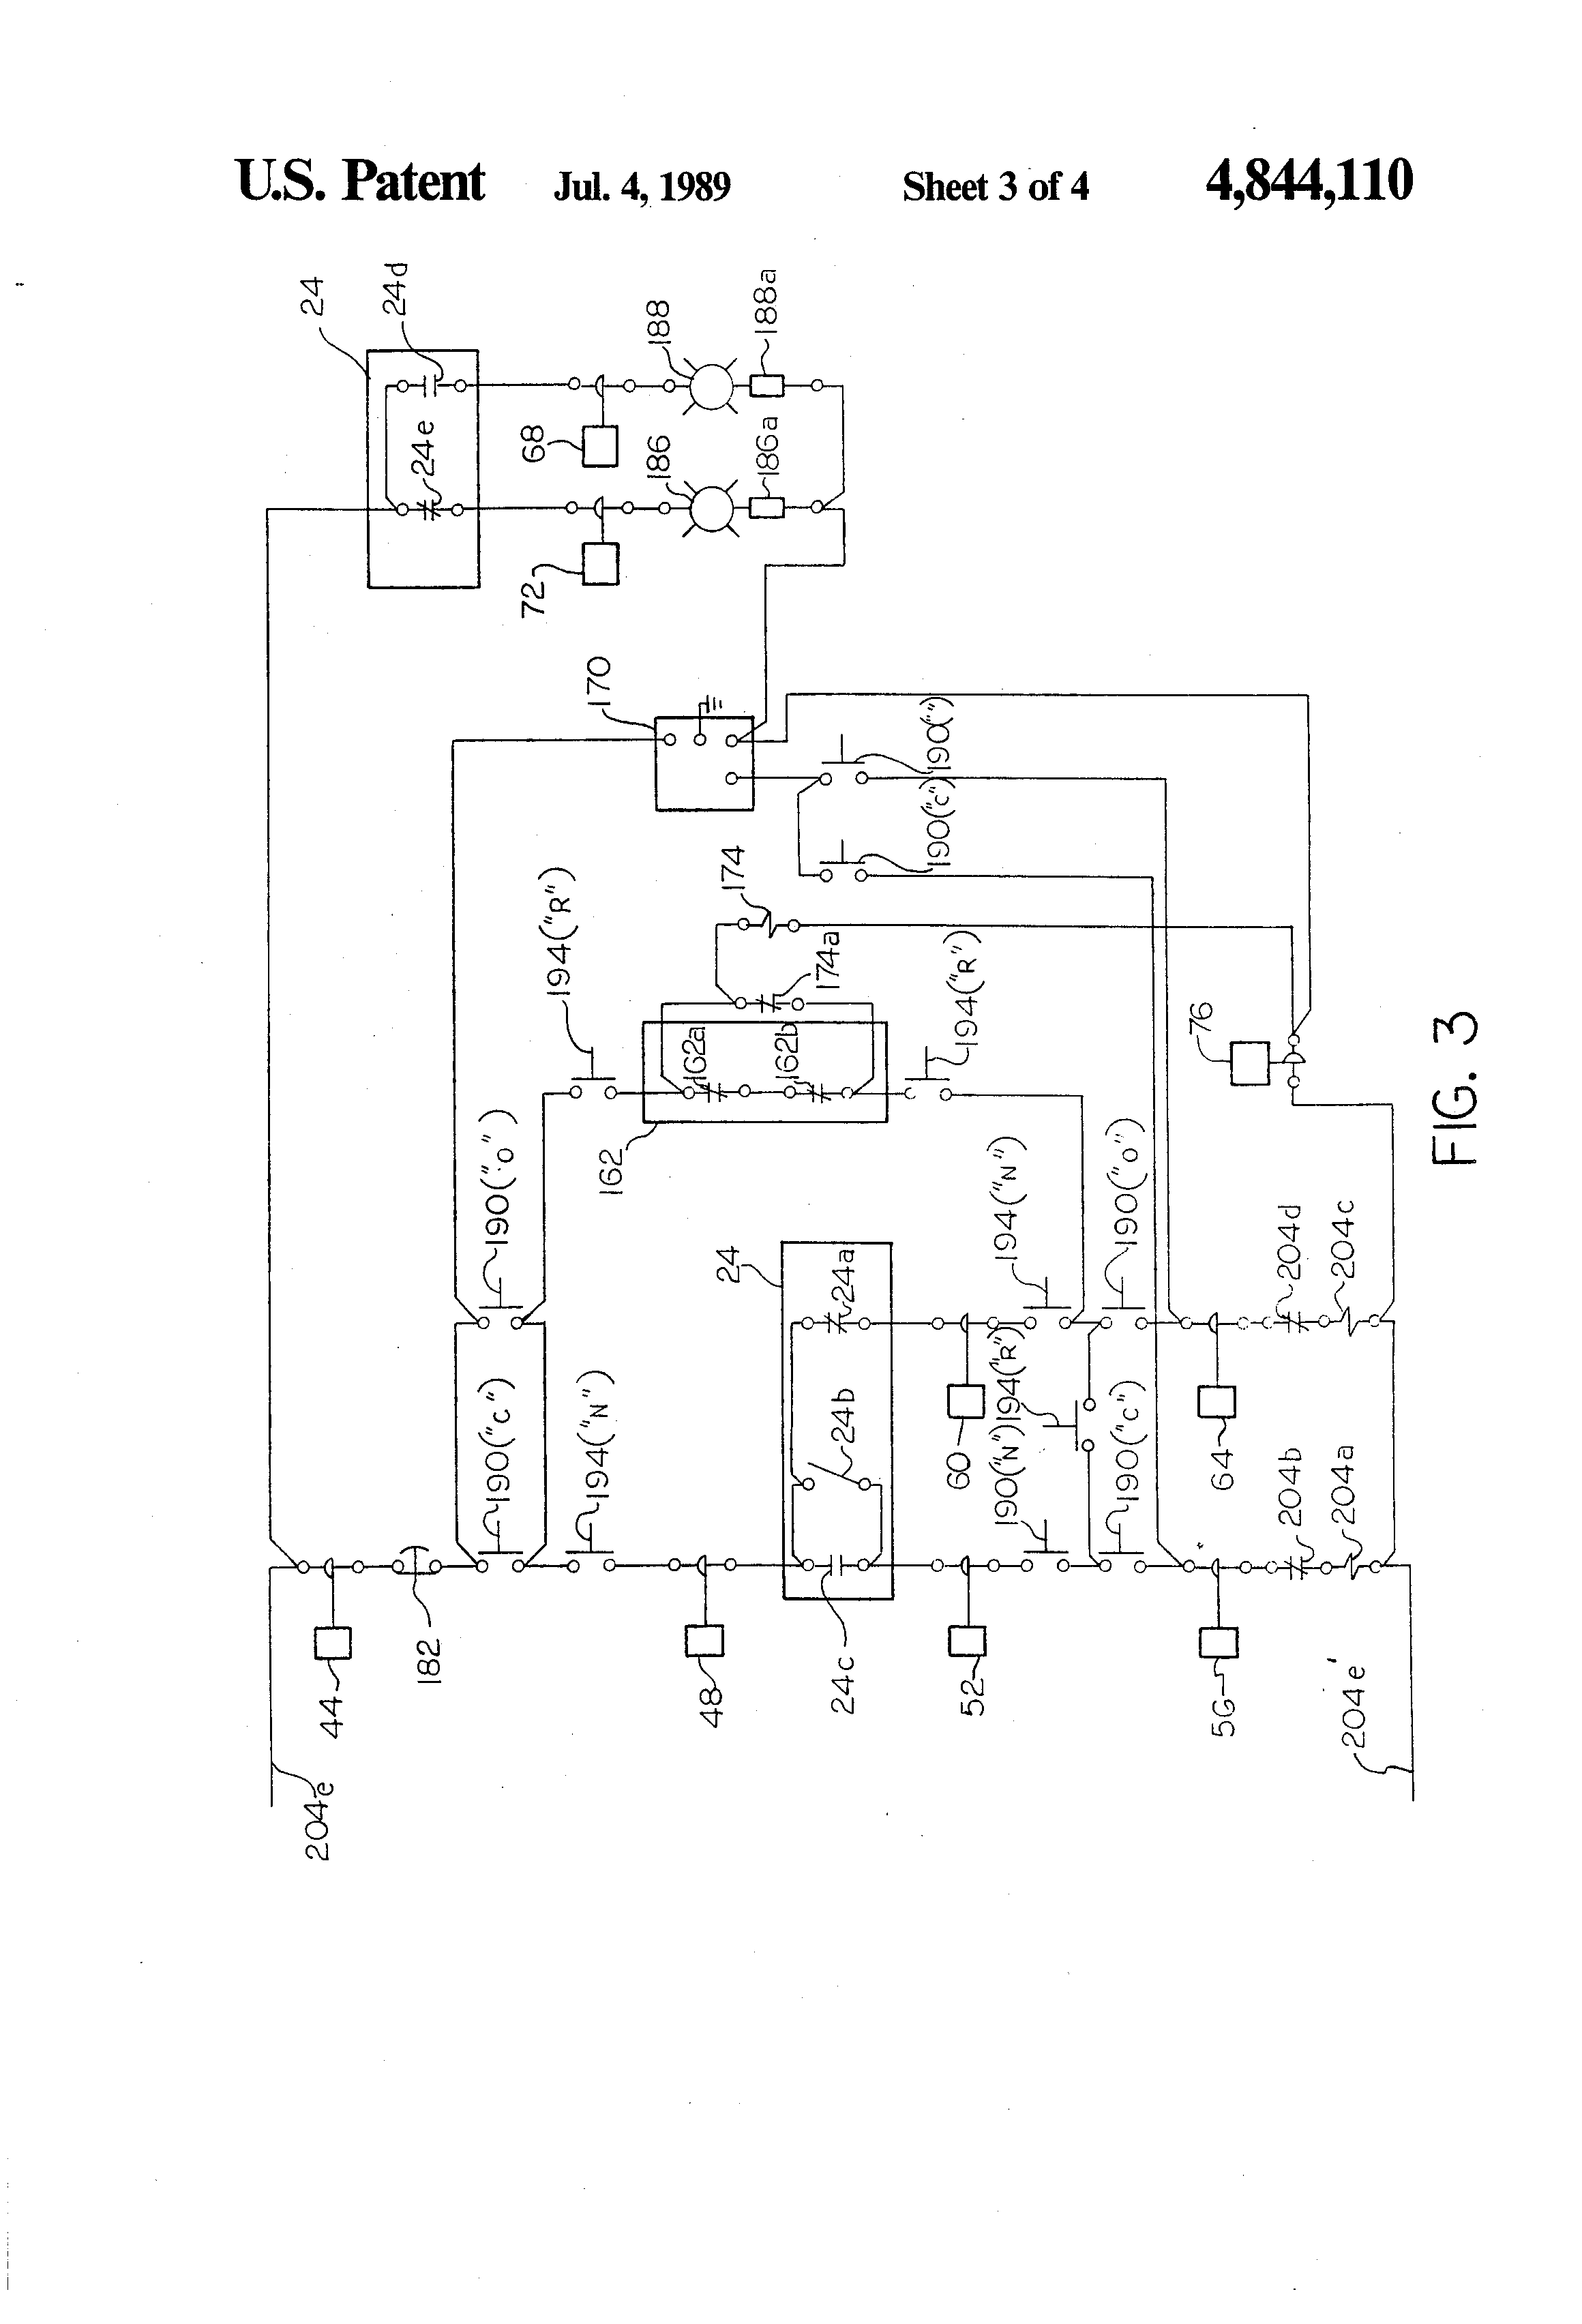 Wiring Diagram Motor Operated Valve : Patent us control system for remotely controlled